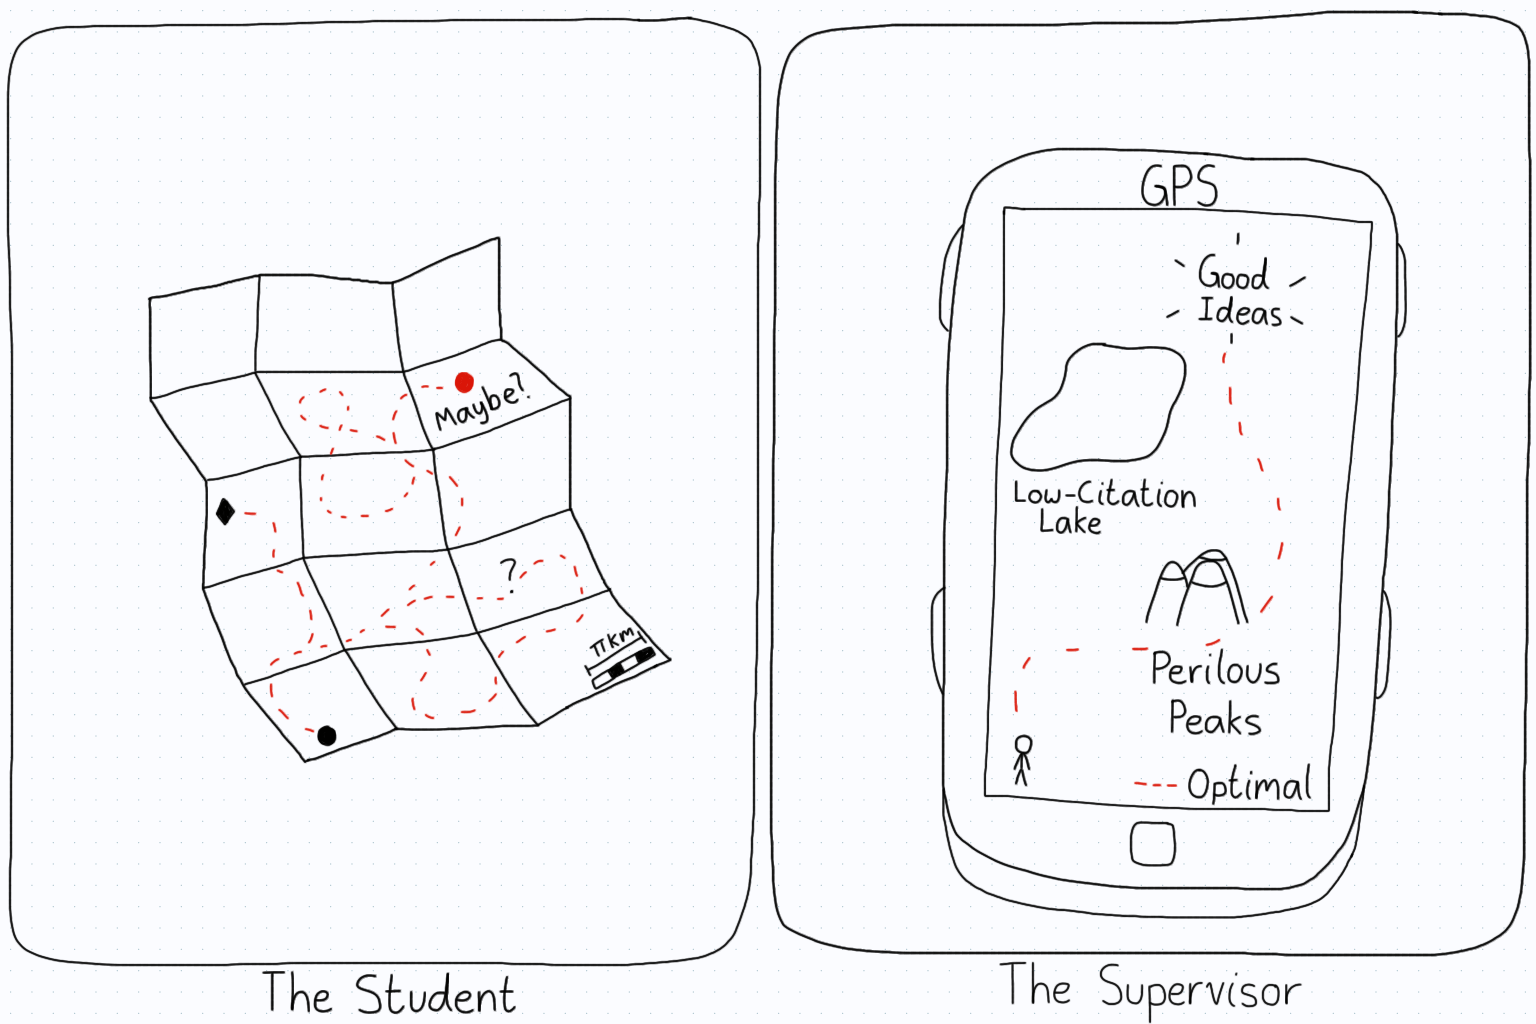 First panel. An old map with a bunch of confused paths represents a student. Second panel. A high-tech GPS receiver represents the supervisor.